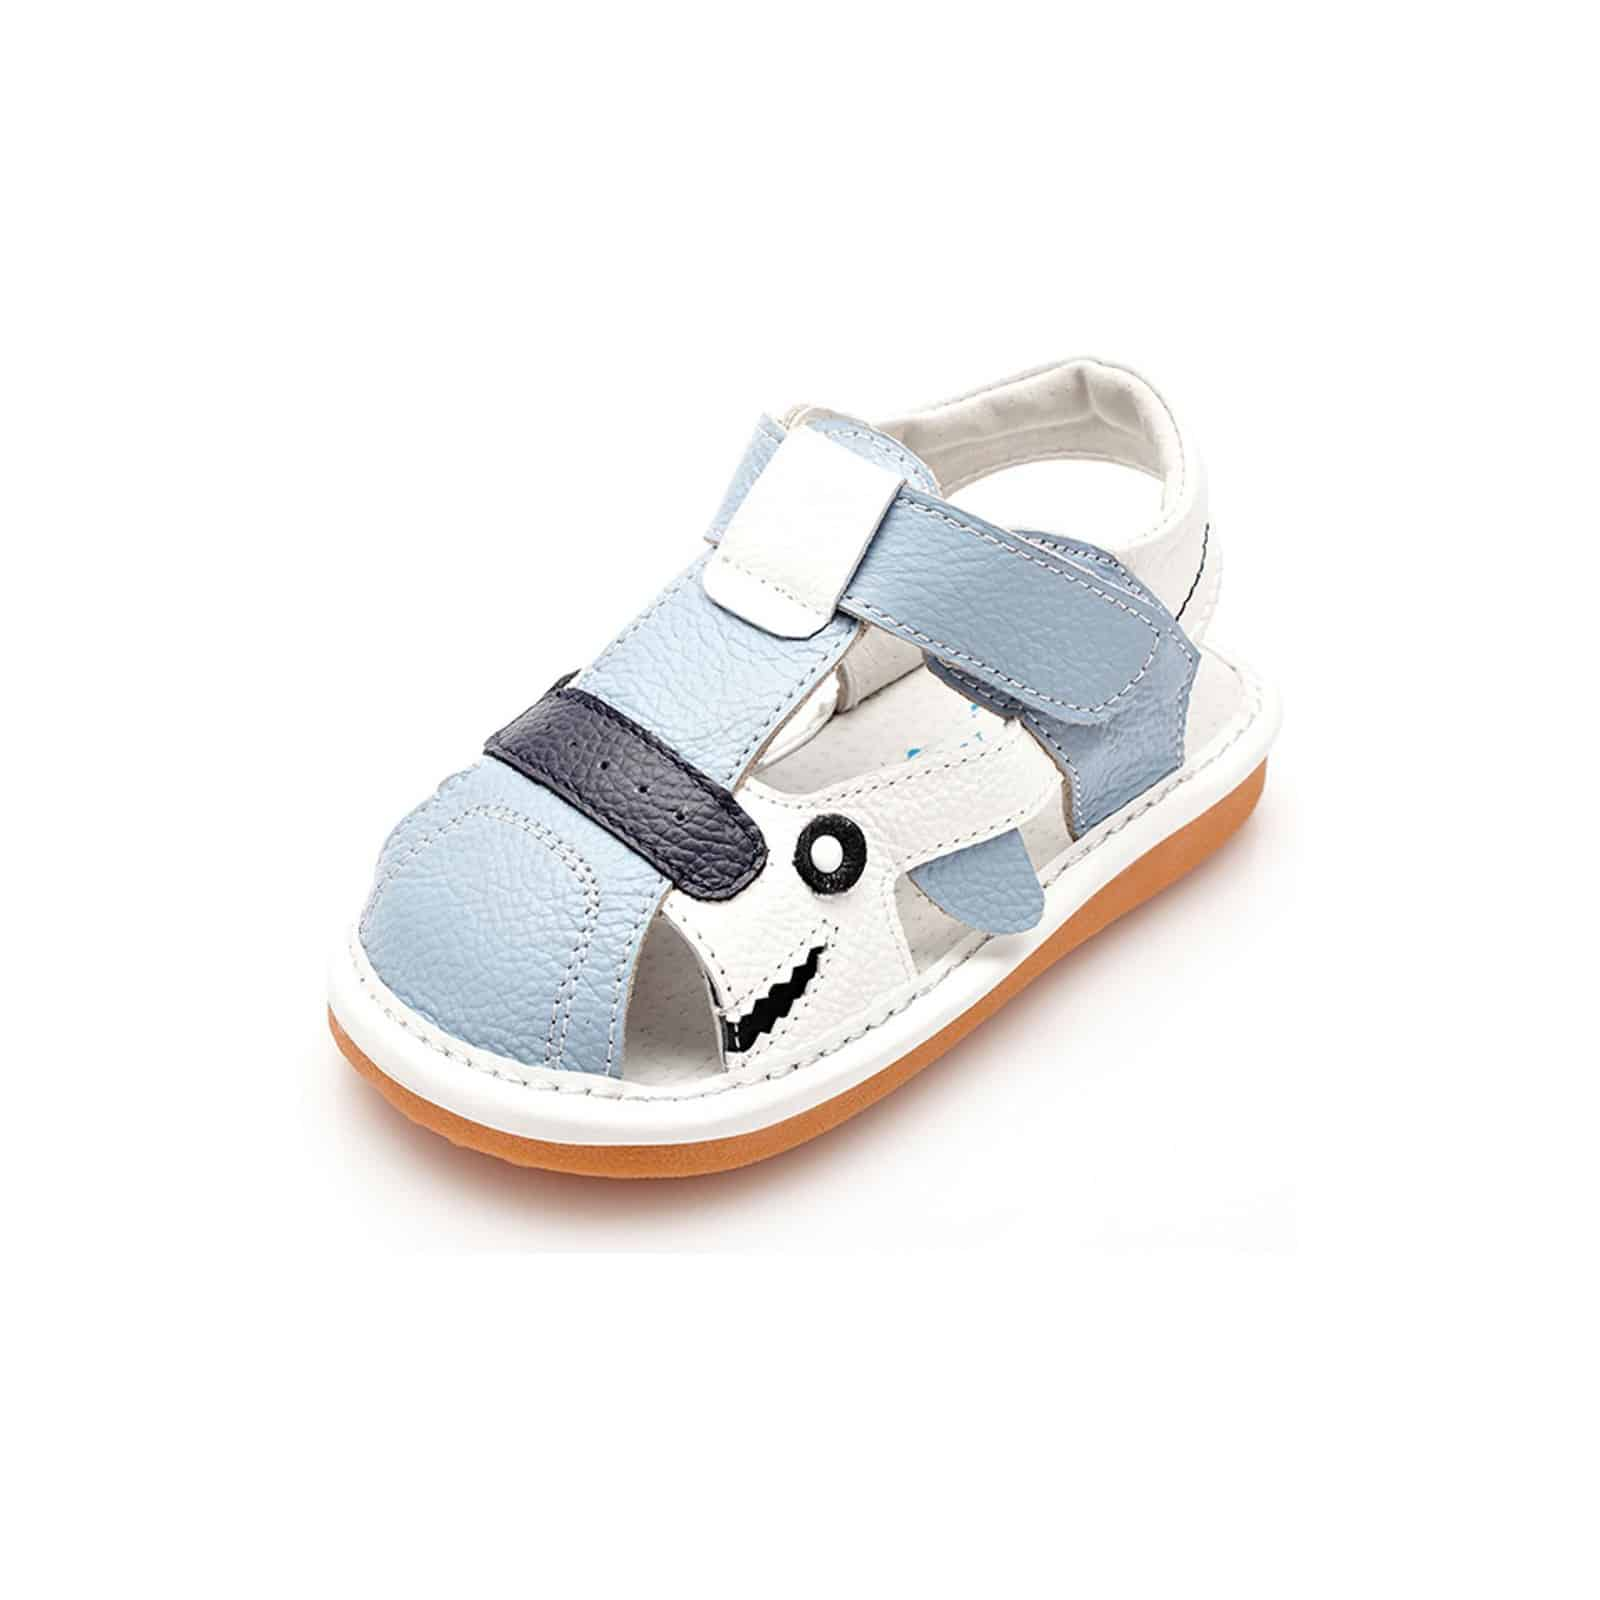 Blue Qcwwdo White And Squeaky Leather Yxy Boys Shoes Toddler Sandals lKcTFJ13